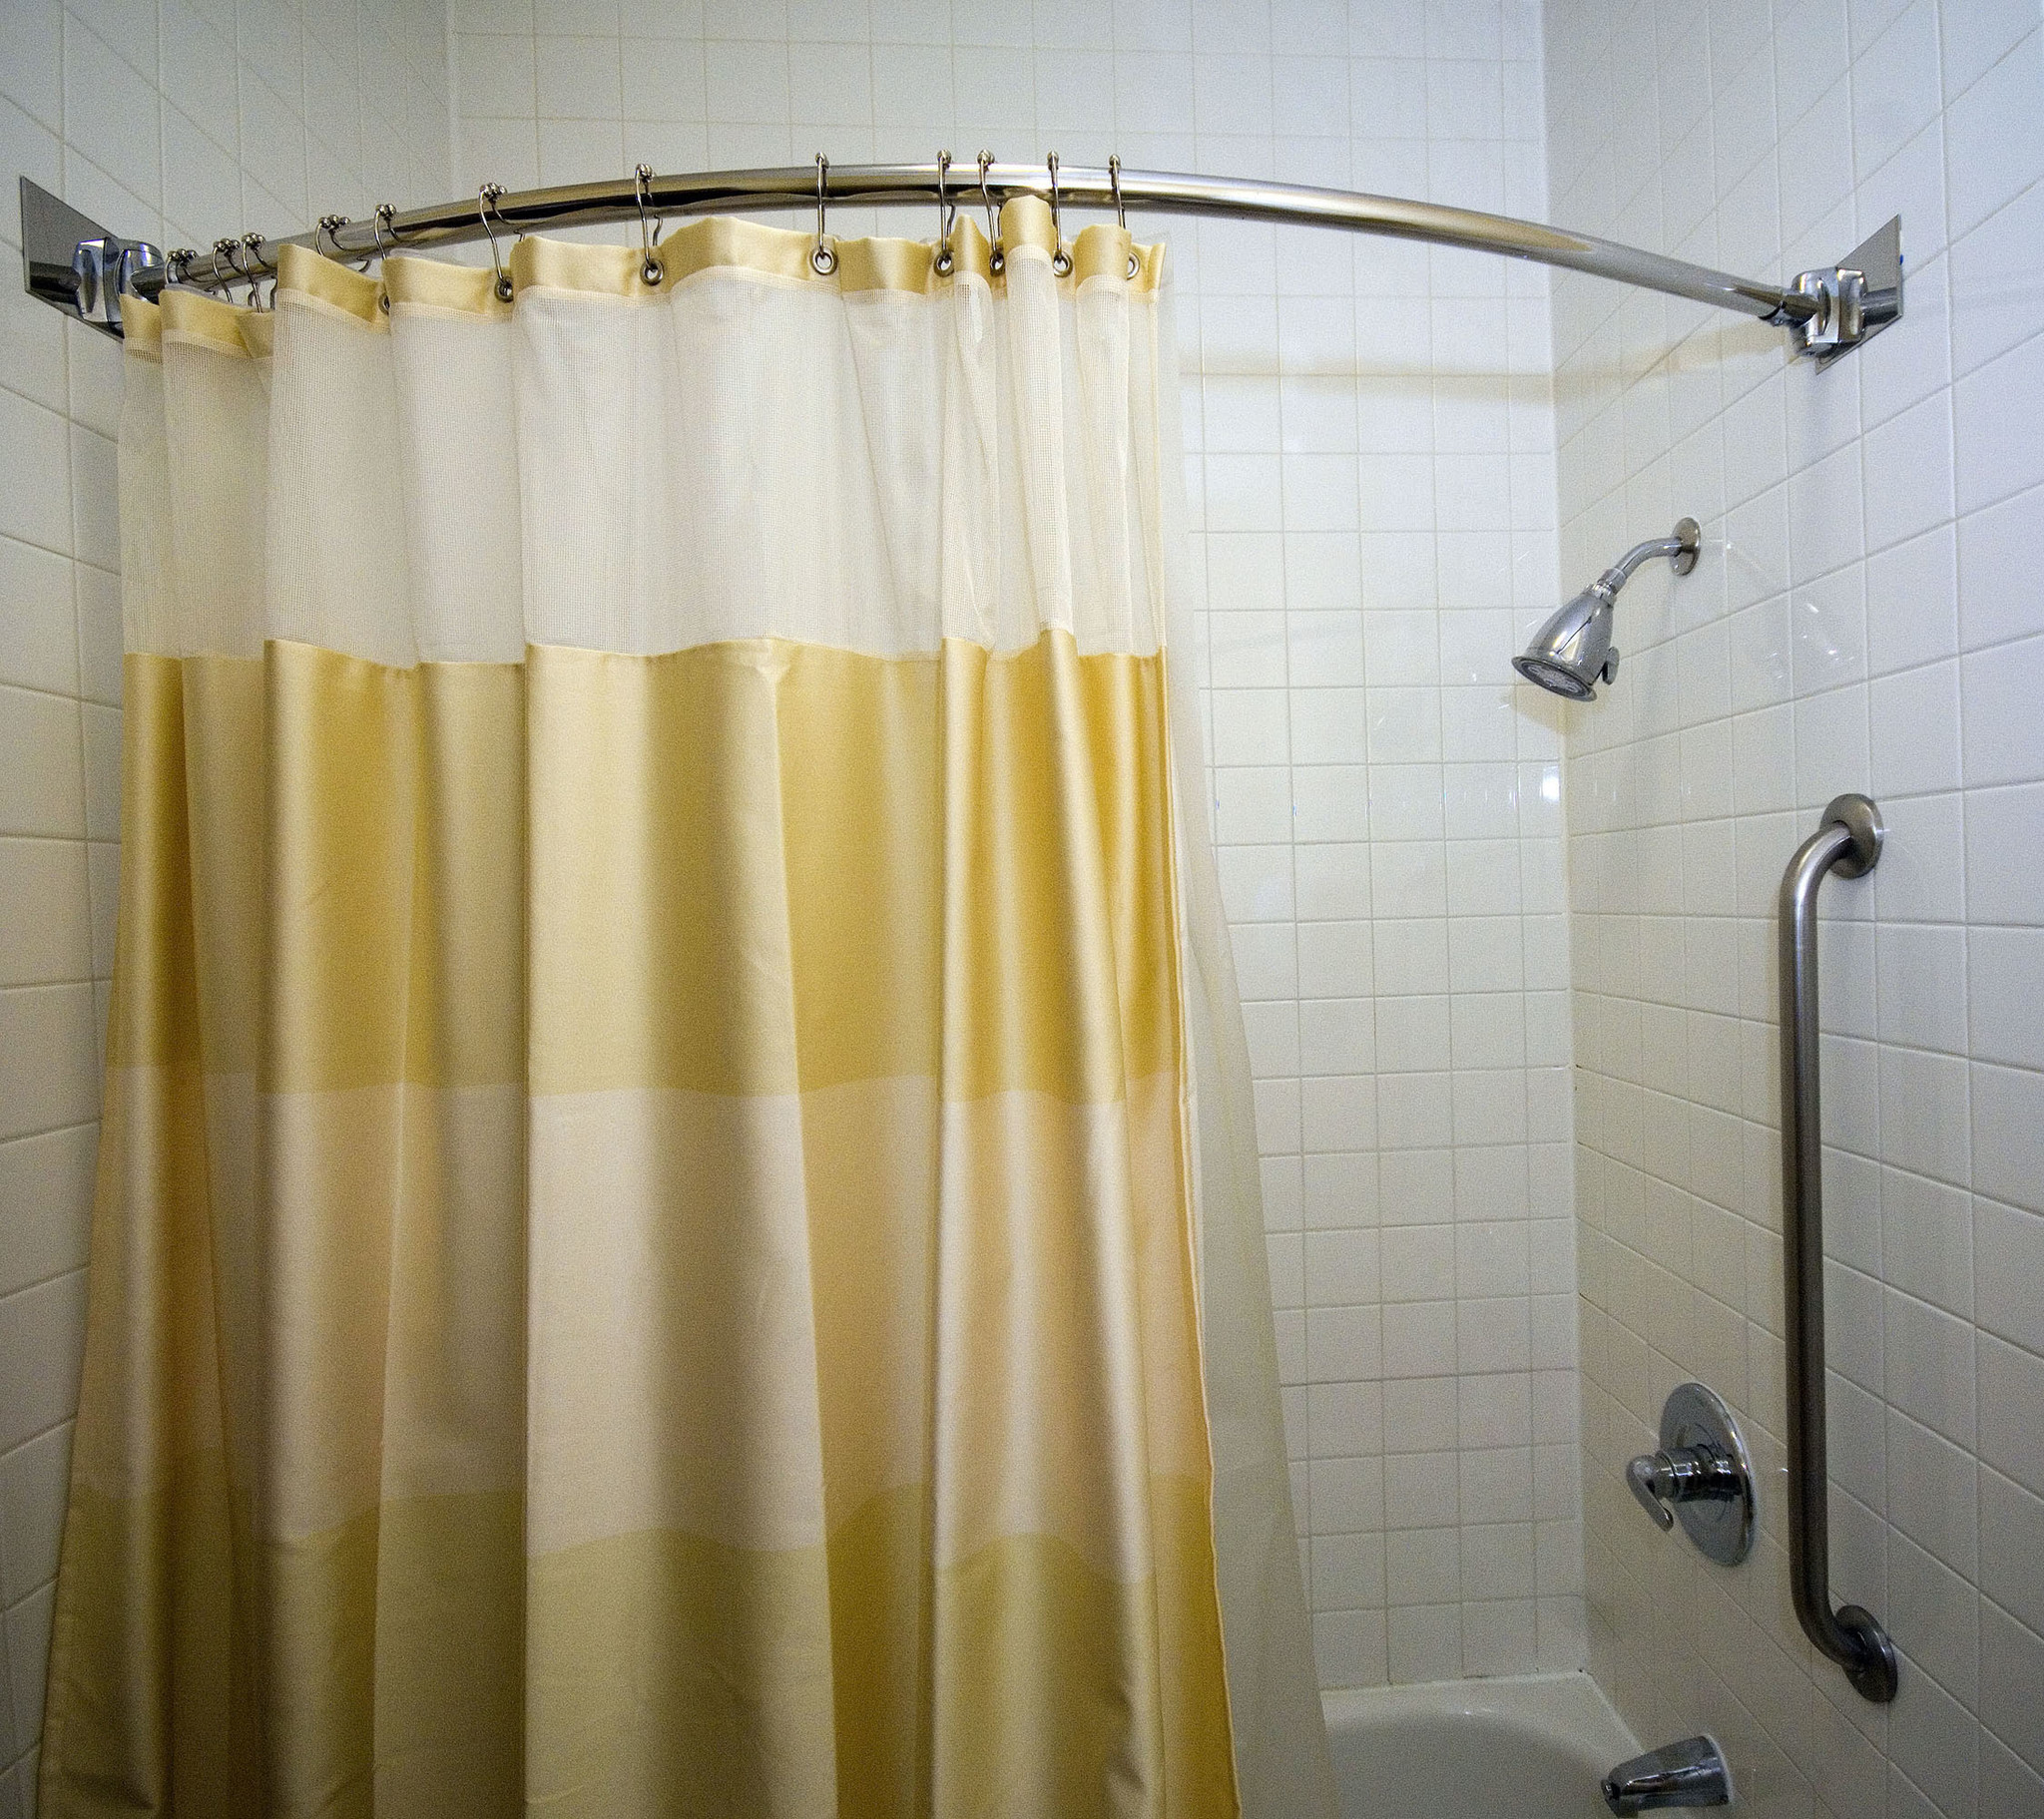 Install A Curved Shower Rod Chicago Tribune